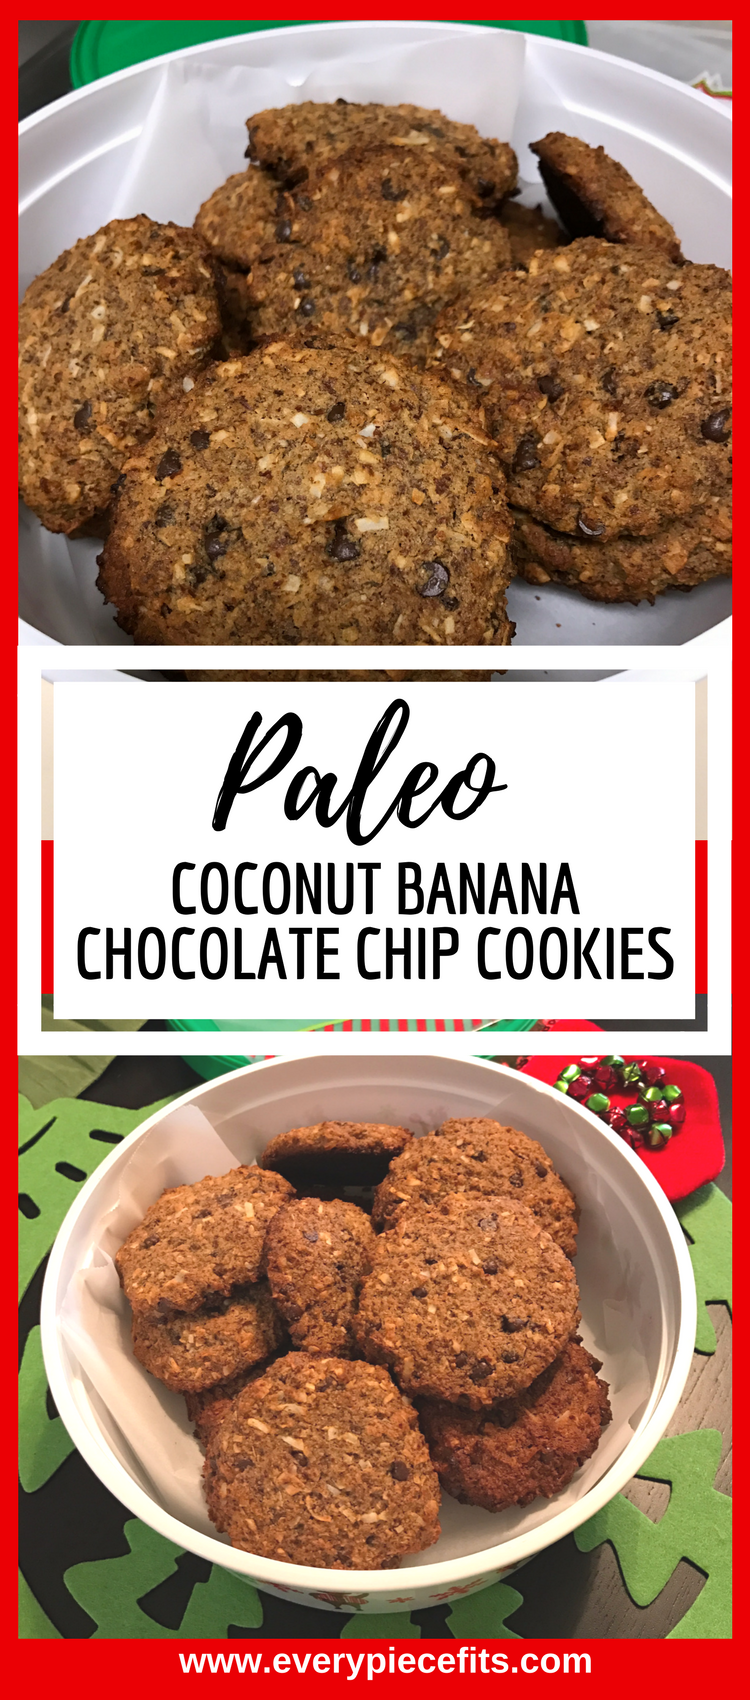 Paleo Coconut Banana Chocolate Chip Cookies.png